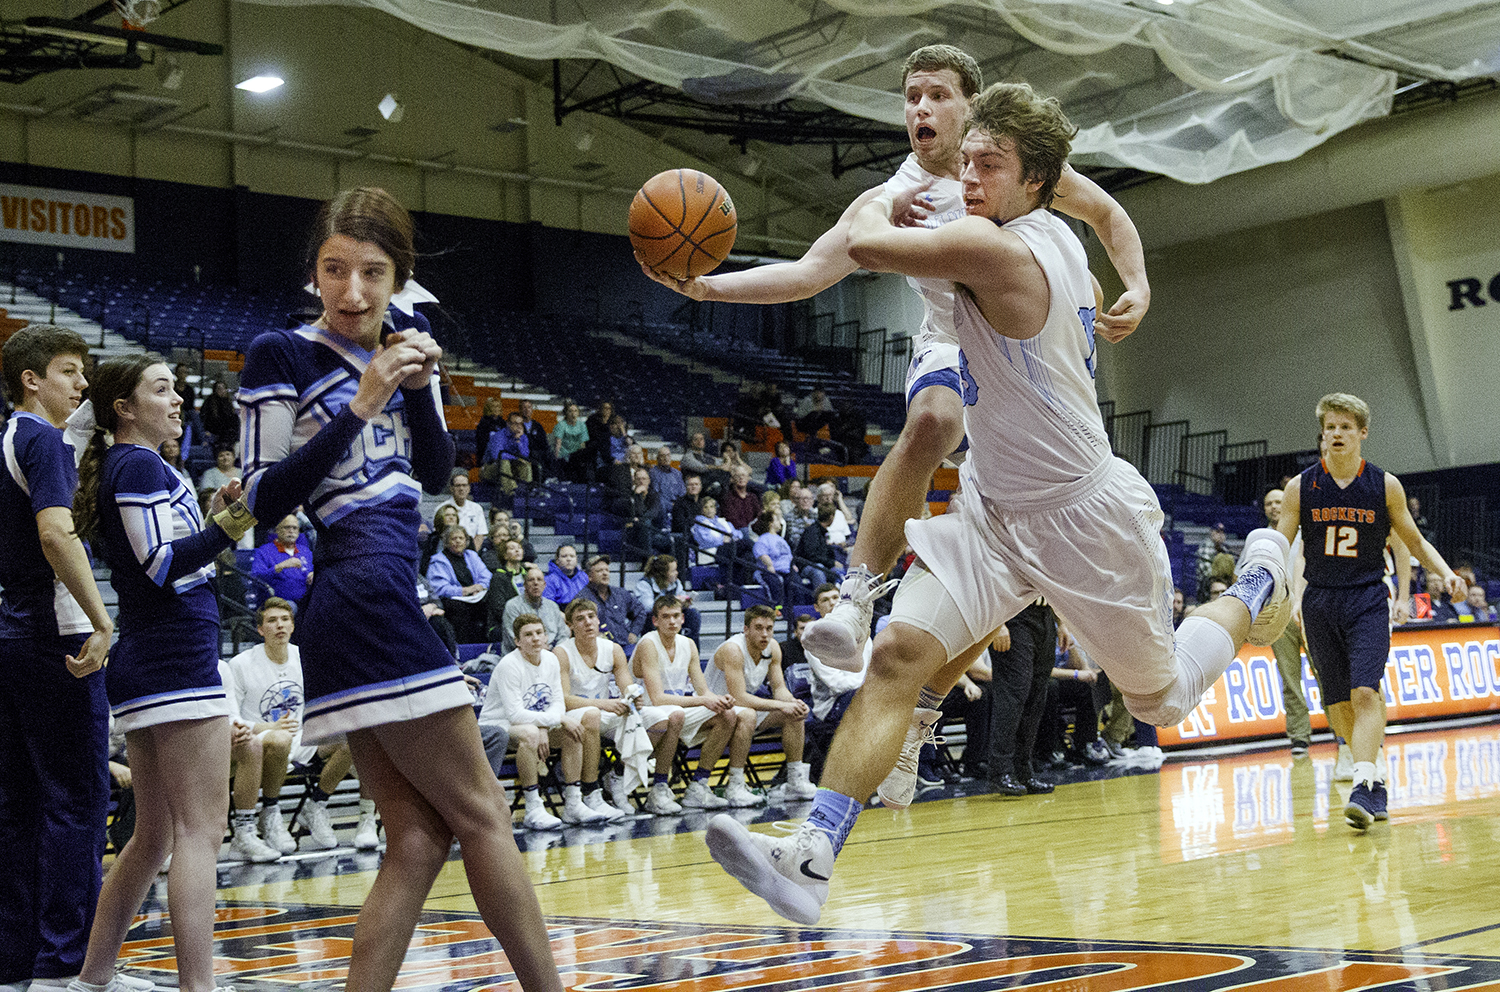 Jerseyville's Kurt Hal tries to save a loose ball as he and Jerseyville's Lucas Ross fly out of bounds near a row of cheerleaders during the Rochester Class 3A Regional Feb. 26, 2018. [Ted Schurter/The State Journal-Register]